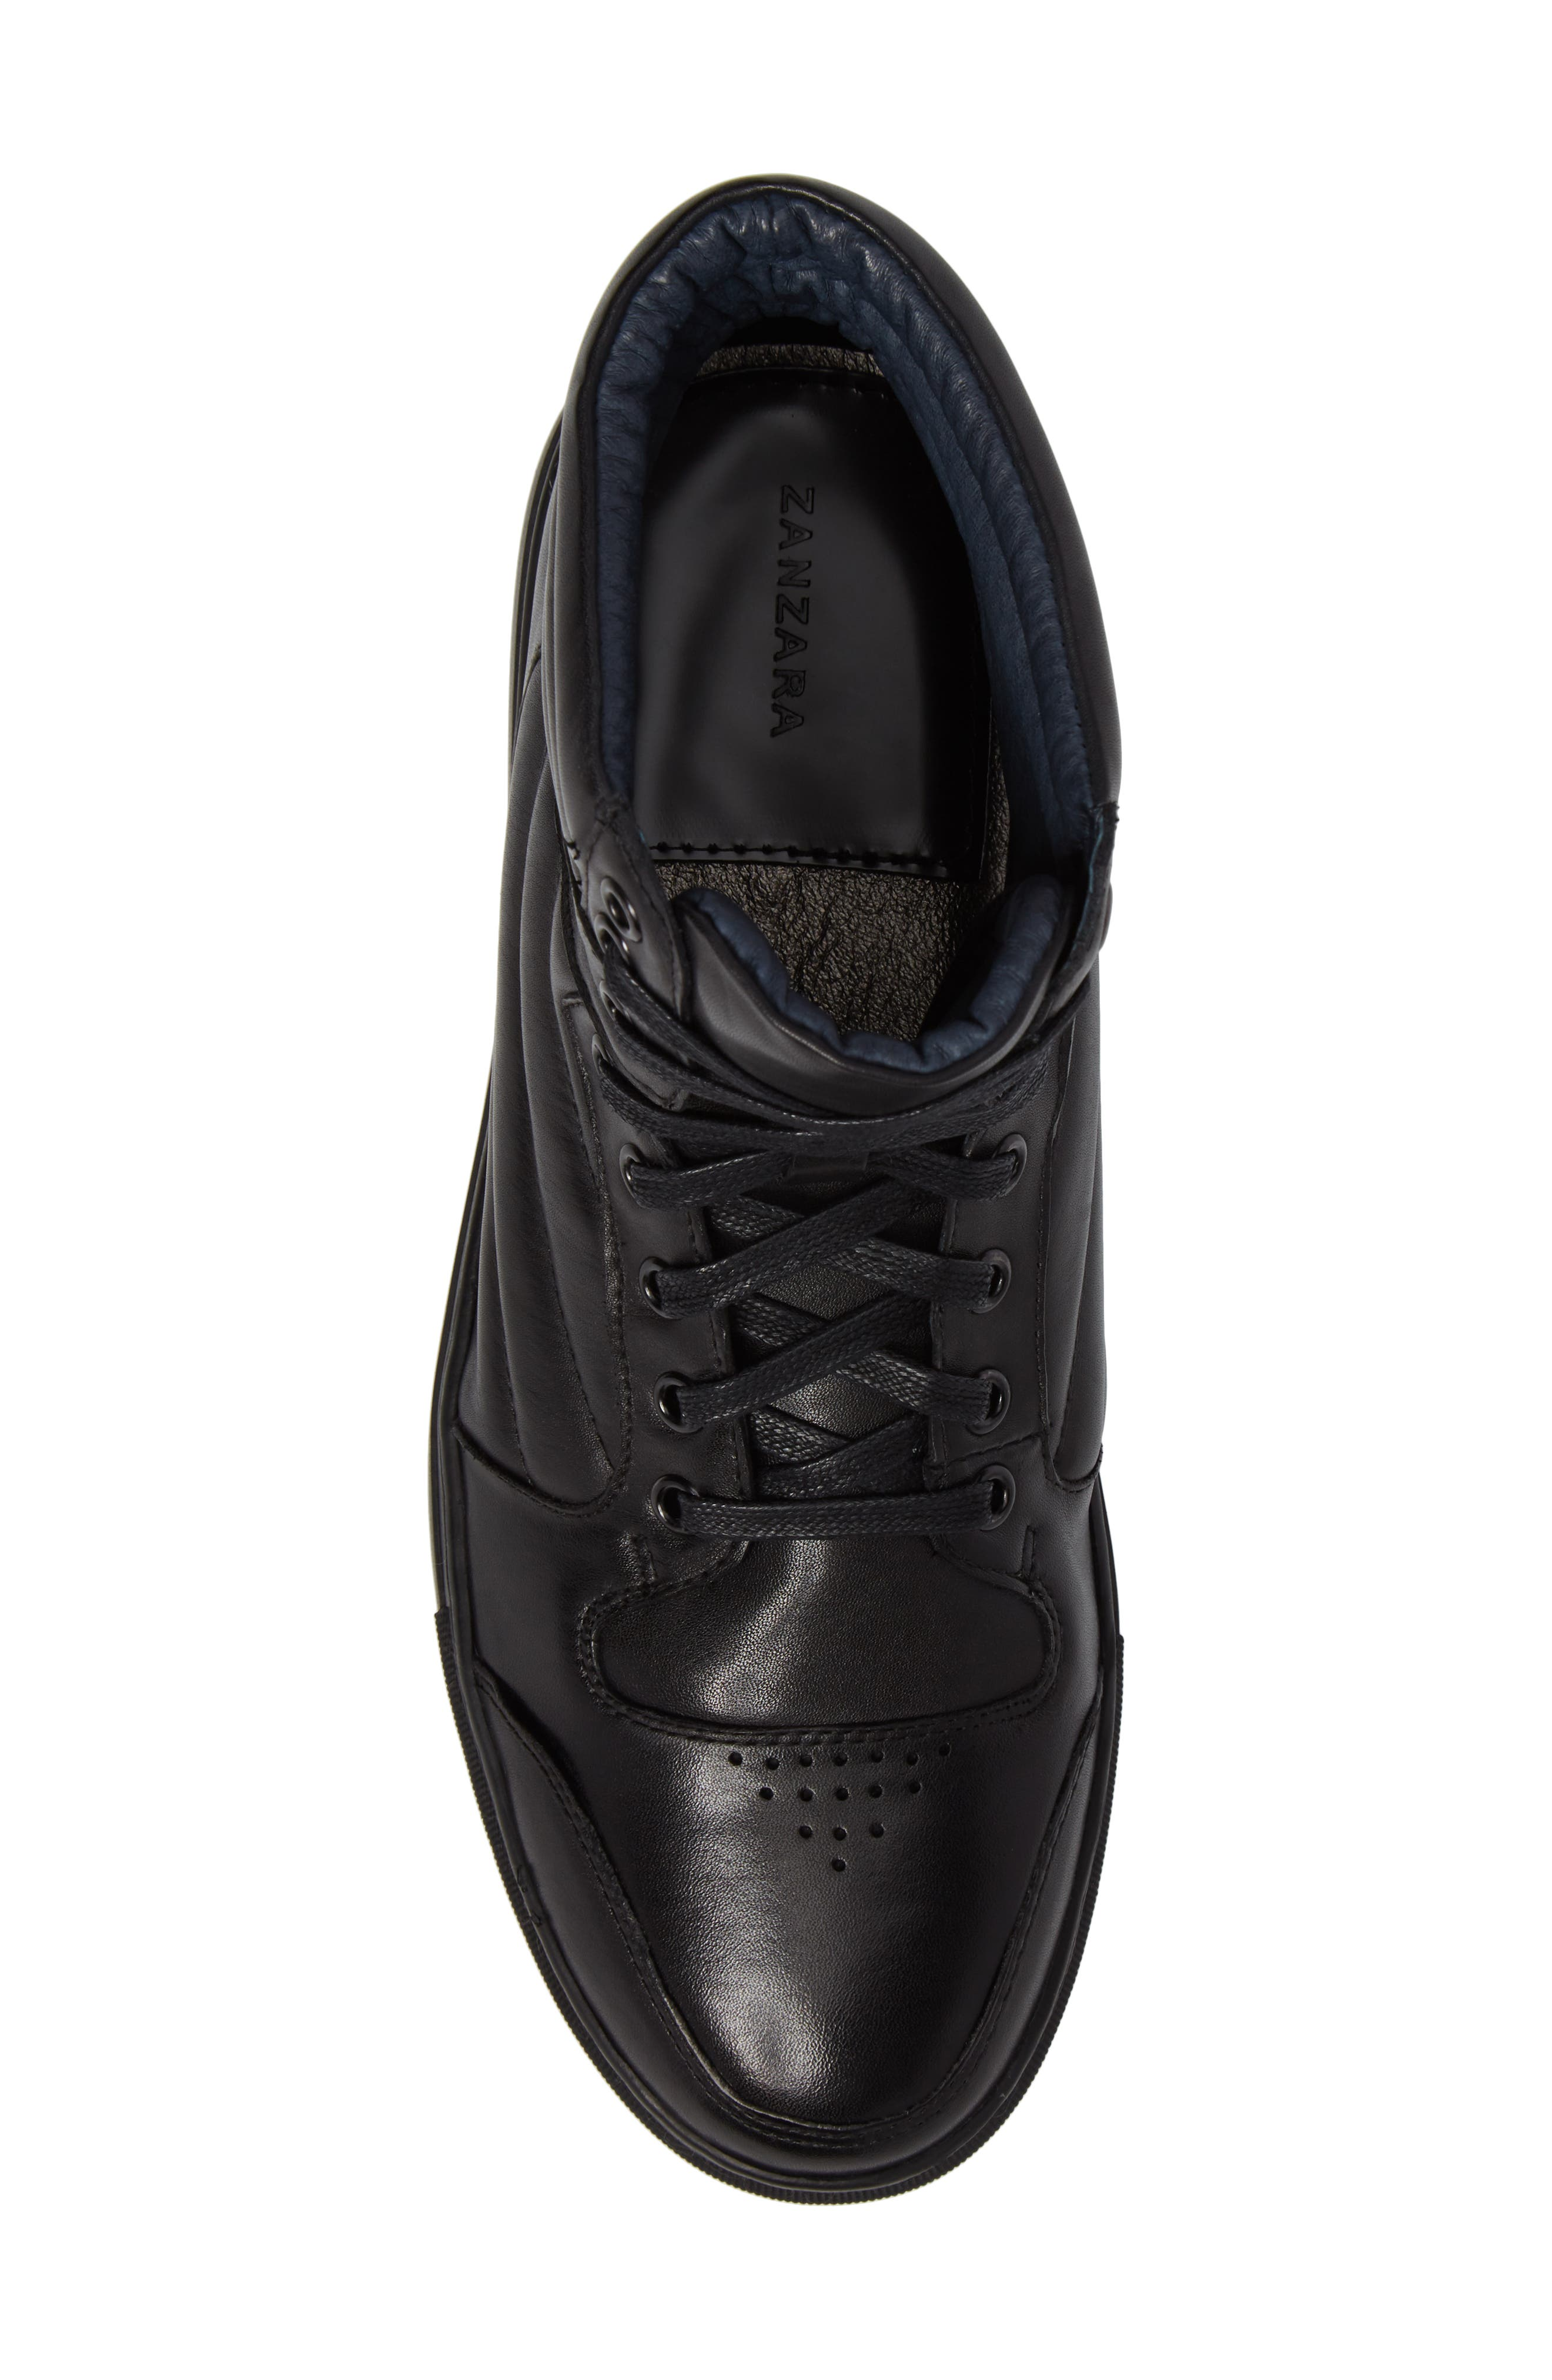 Vacdes High Top Sneaker,                             Alternate thumbnail 5, color,                             Black Leather